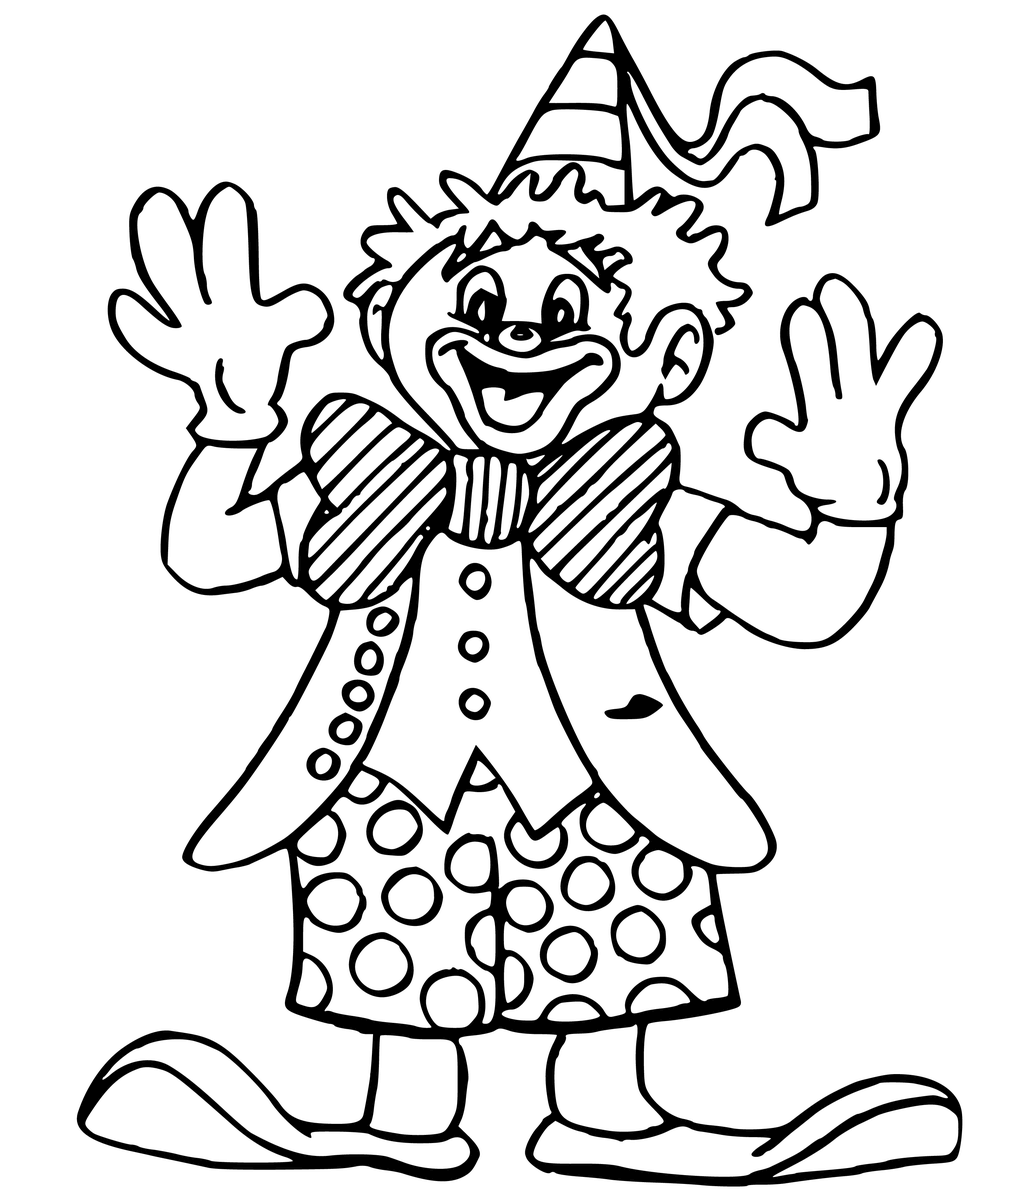 free clown coloring pages clown free coloring page topcoloringpagesnet free pages clown coloring